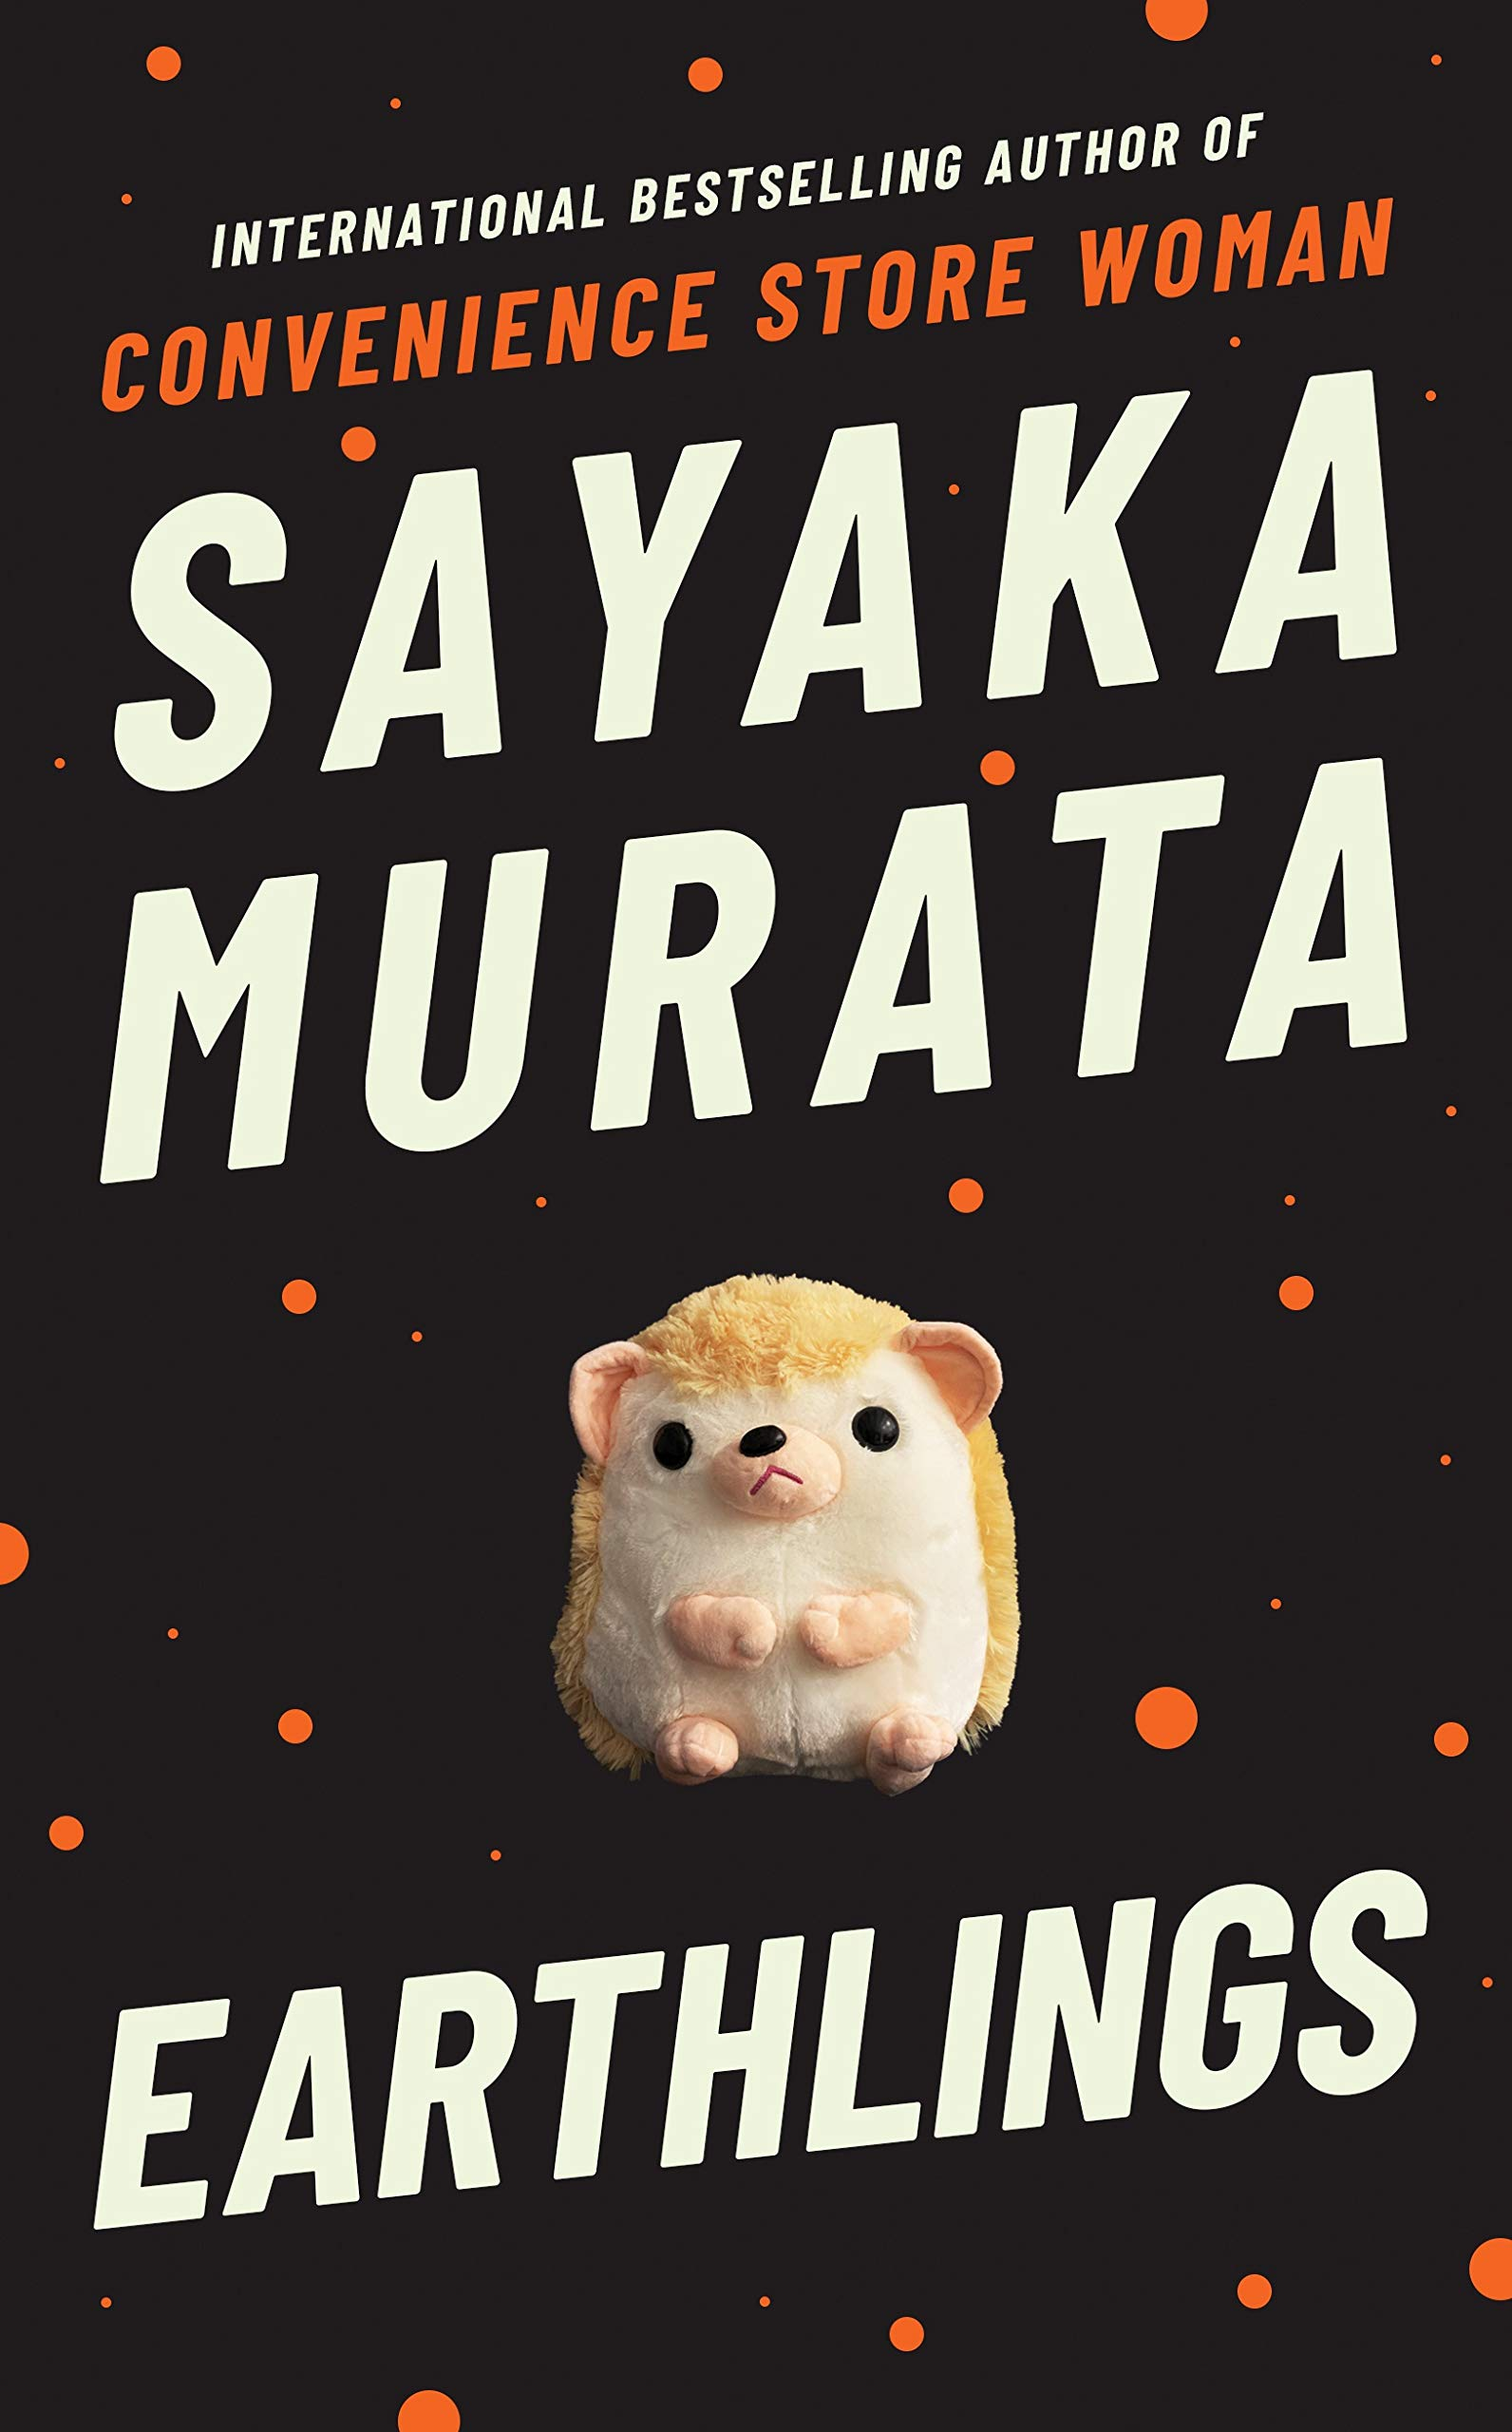 Earthlings: Amazon.co.uk: Sayaka Murata: 9781783785674: Books